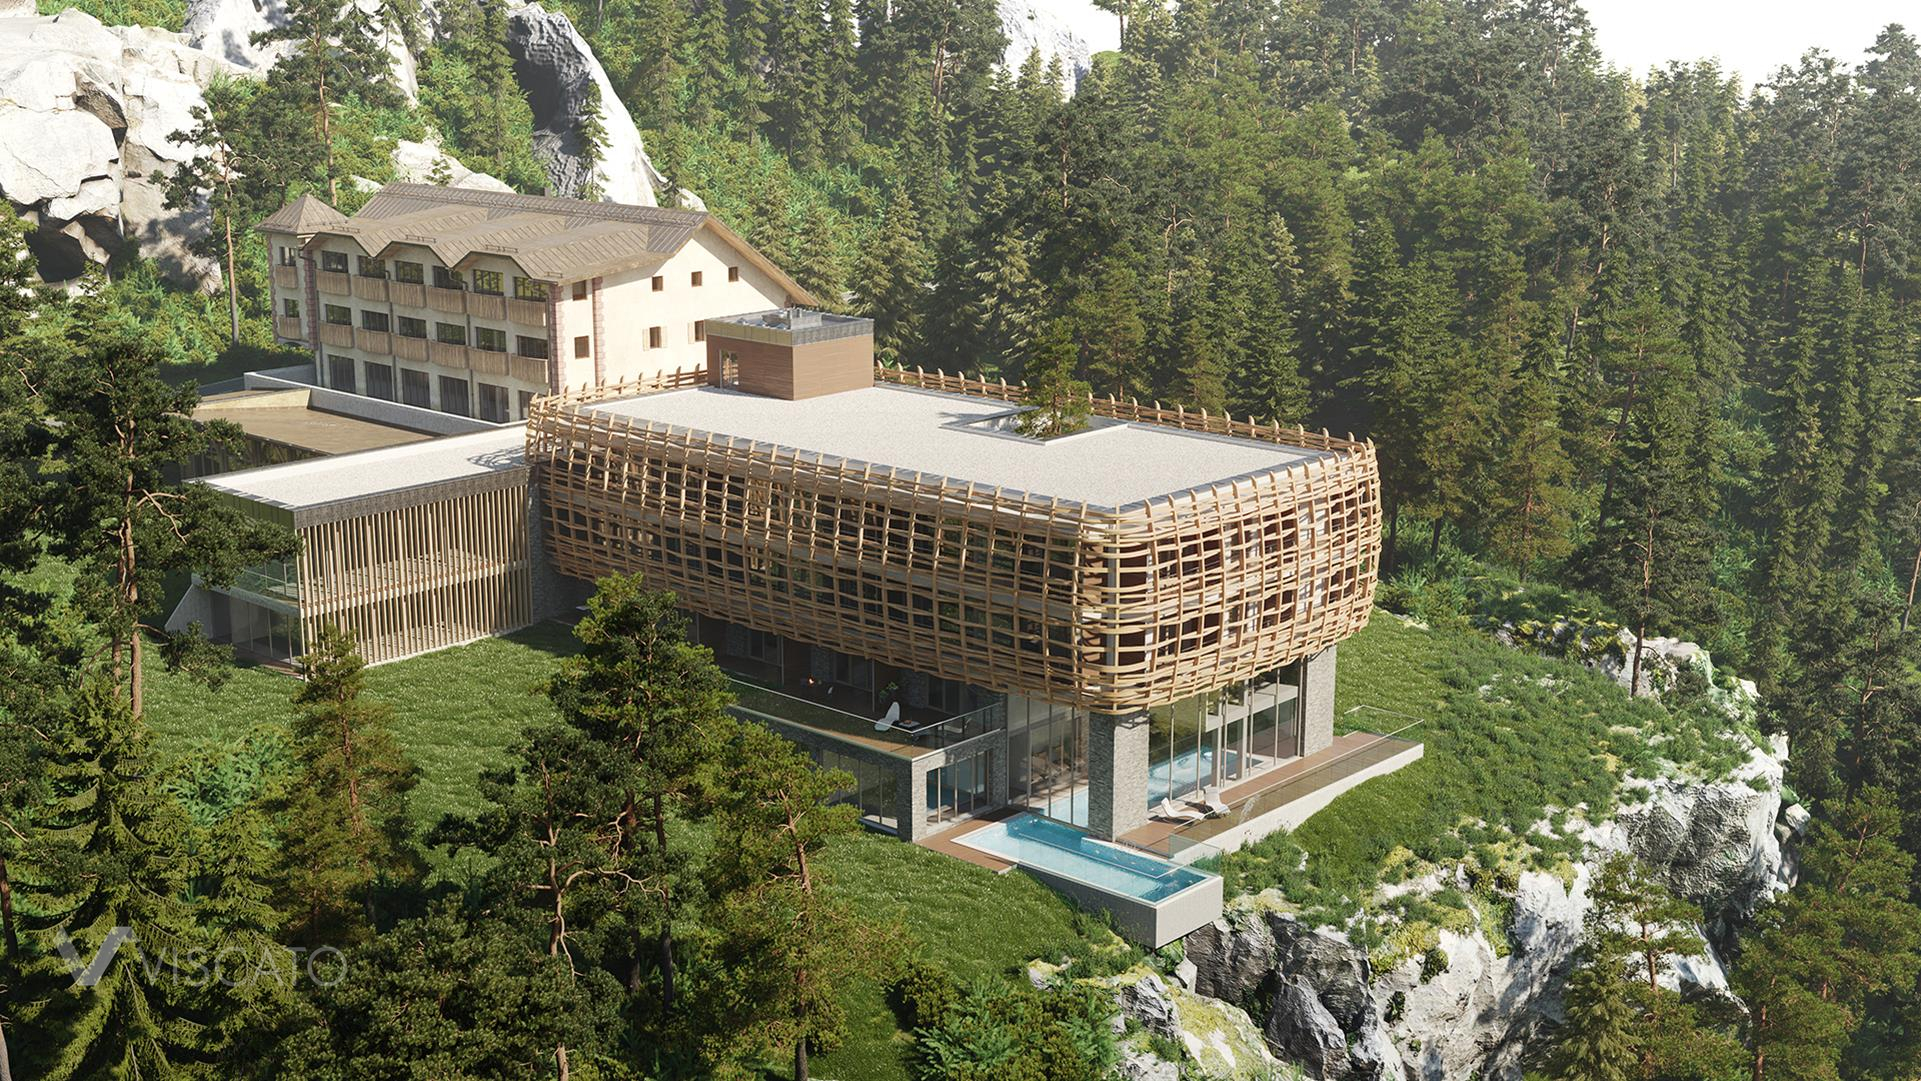 Building in mountains, 3D Architectural Rendering